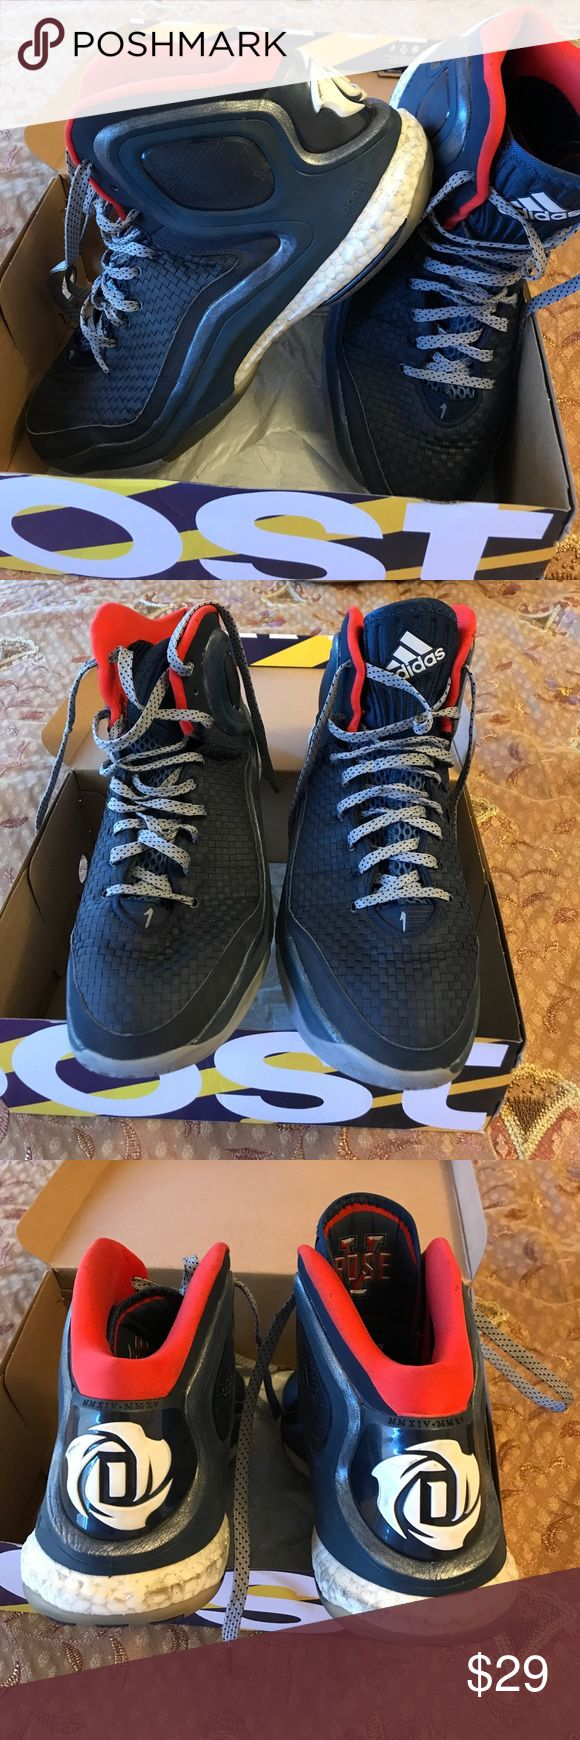 Derrick rose basketball shoes Men's size 11.5 derrick rose performance basketball shoes. Great grip. Very comfortable. Work a few times. WILL CLEAN THEM VERY WELL BEFORE SHIPPING. Thank you feel free to make an offer. adidas Shoes Athletic Shoes